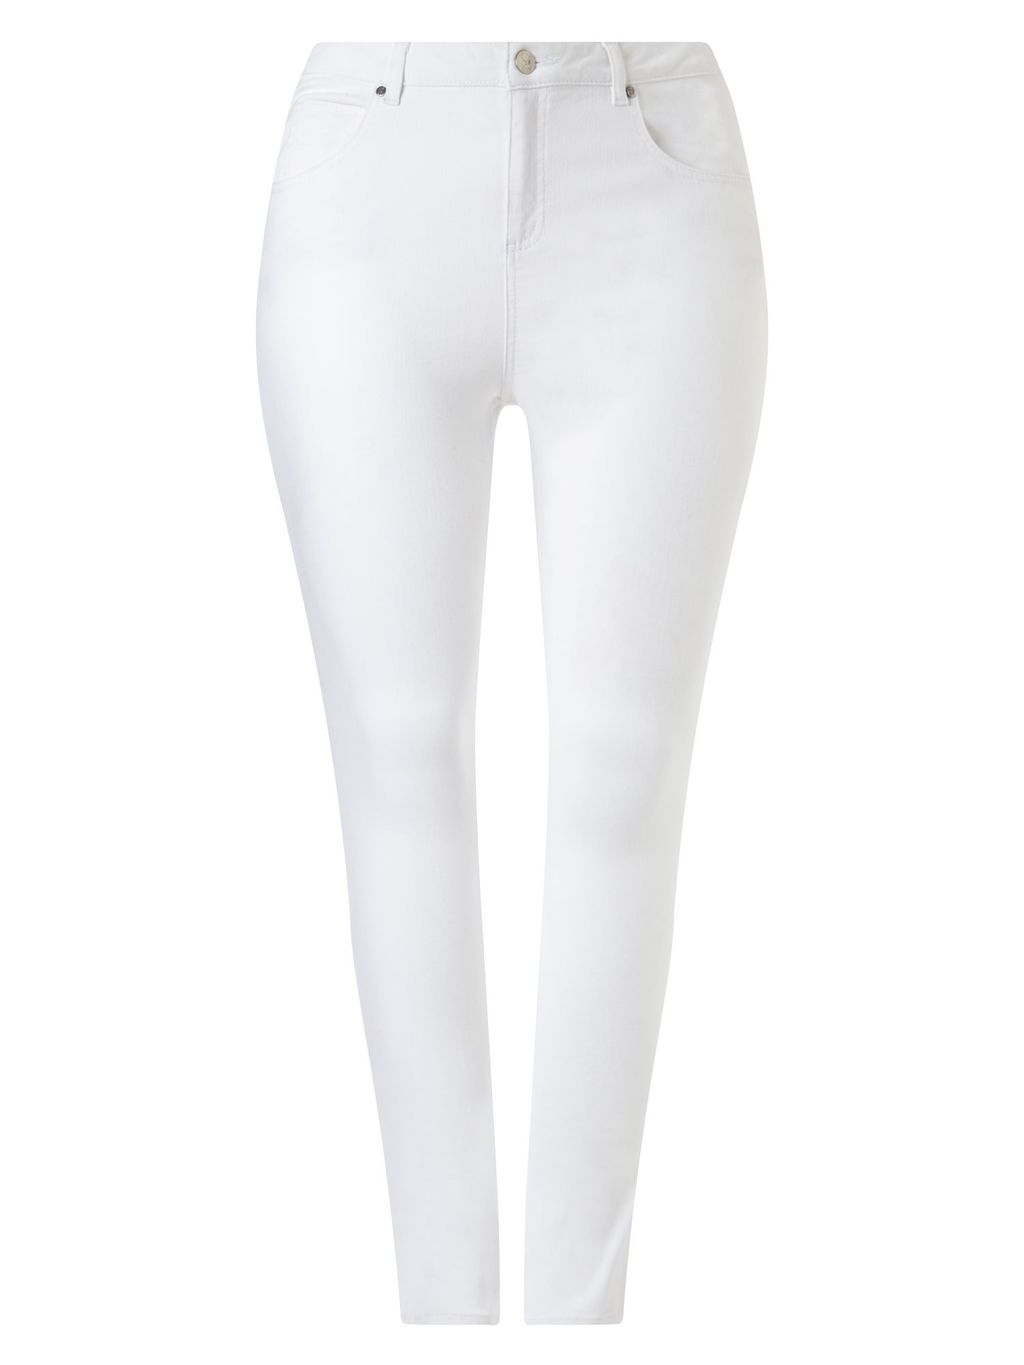 Janice Jeans, White - style: skinny leg; length: standard; pattern: plain; pocket detail: traditional 5 pocket; waist: mid/regular rise; predominant colour: white; occasions: casual; fibres: cotton - stretch; texture group: denim; pattern type: fabric; season: s/s 2016; wardrobe: highlight